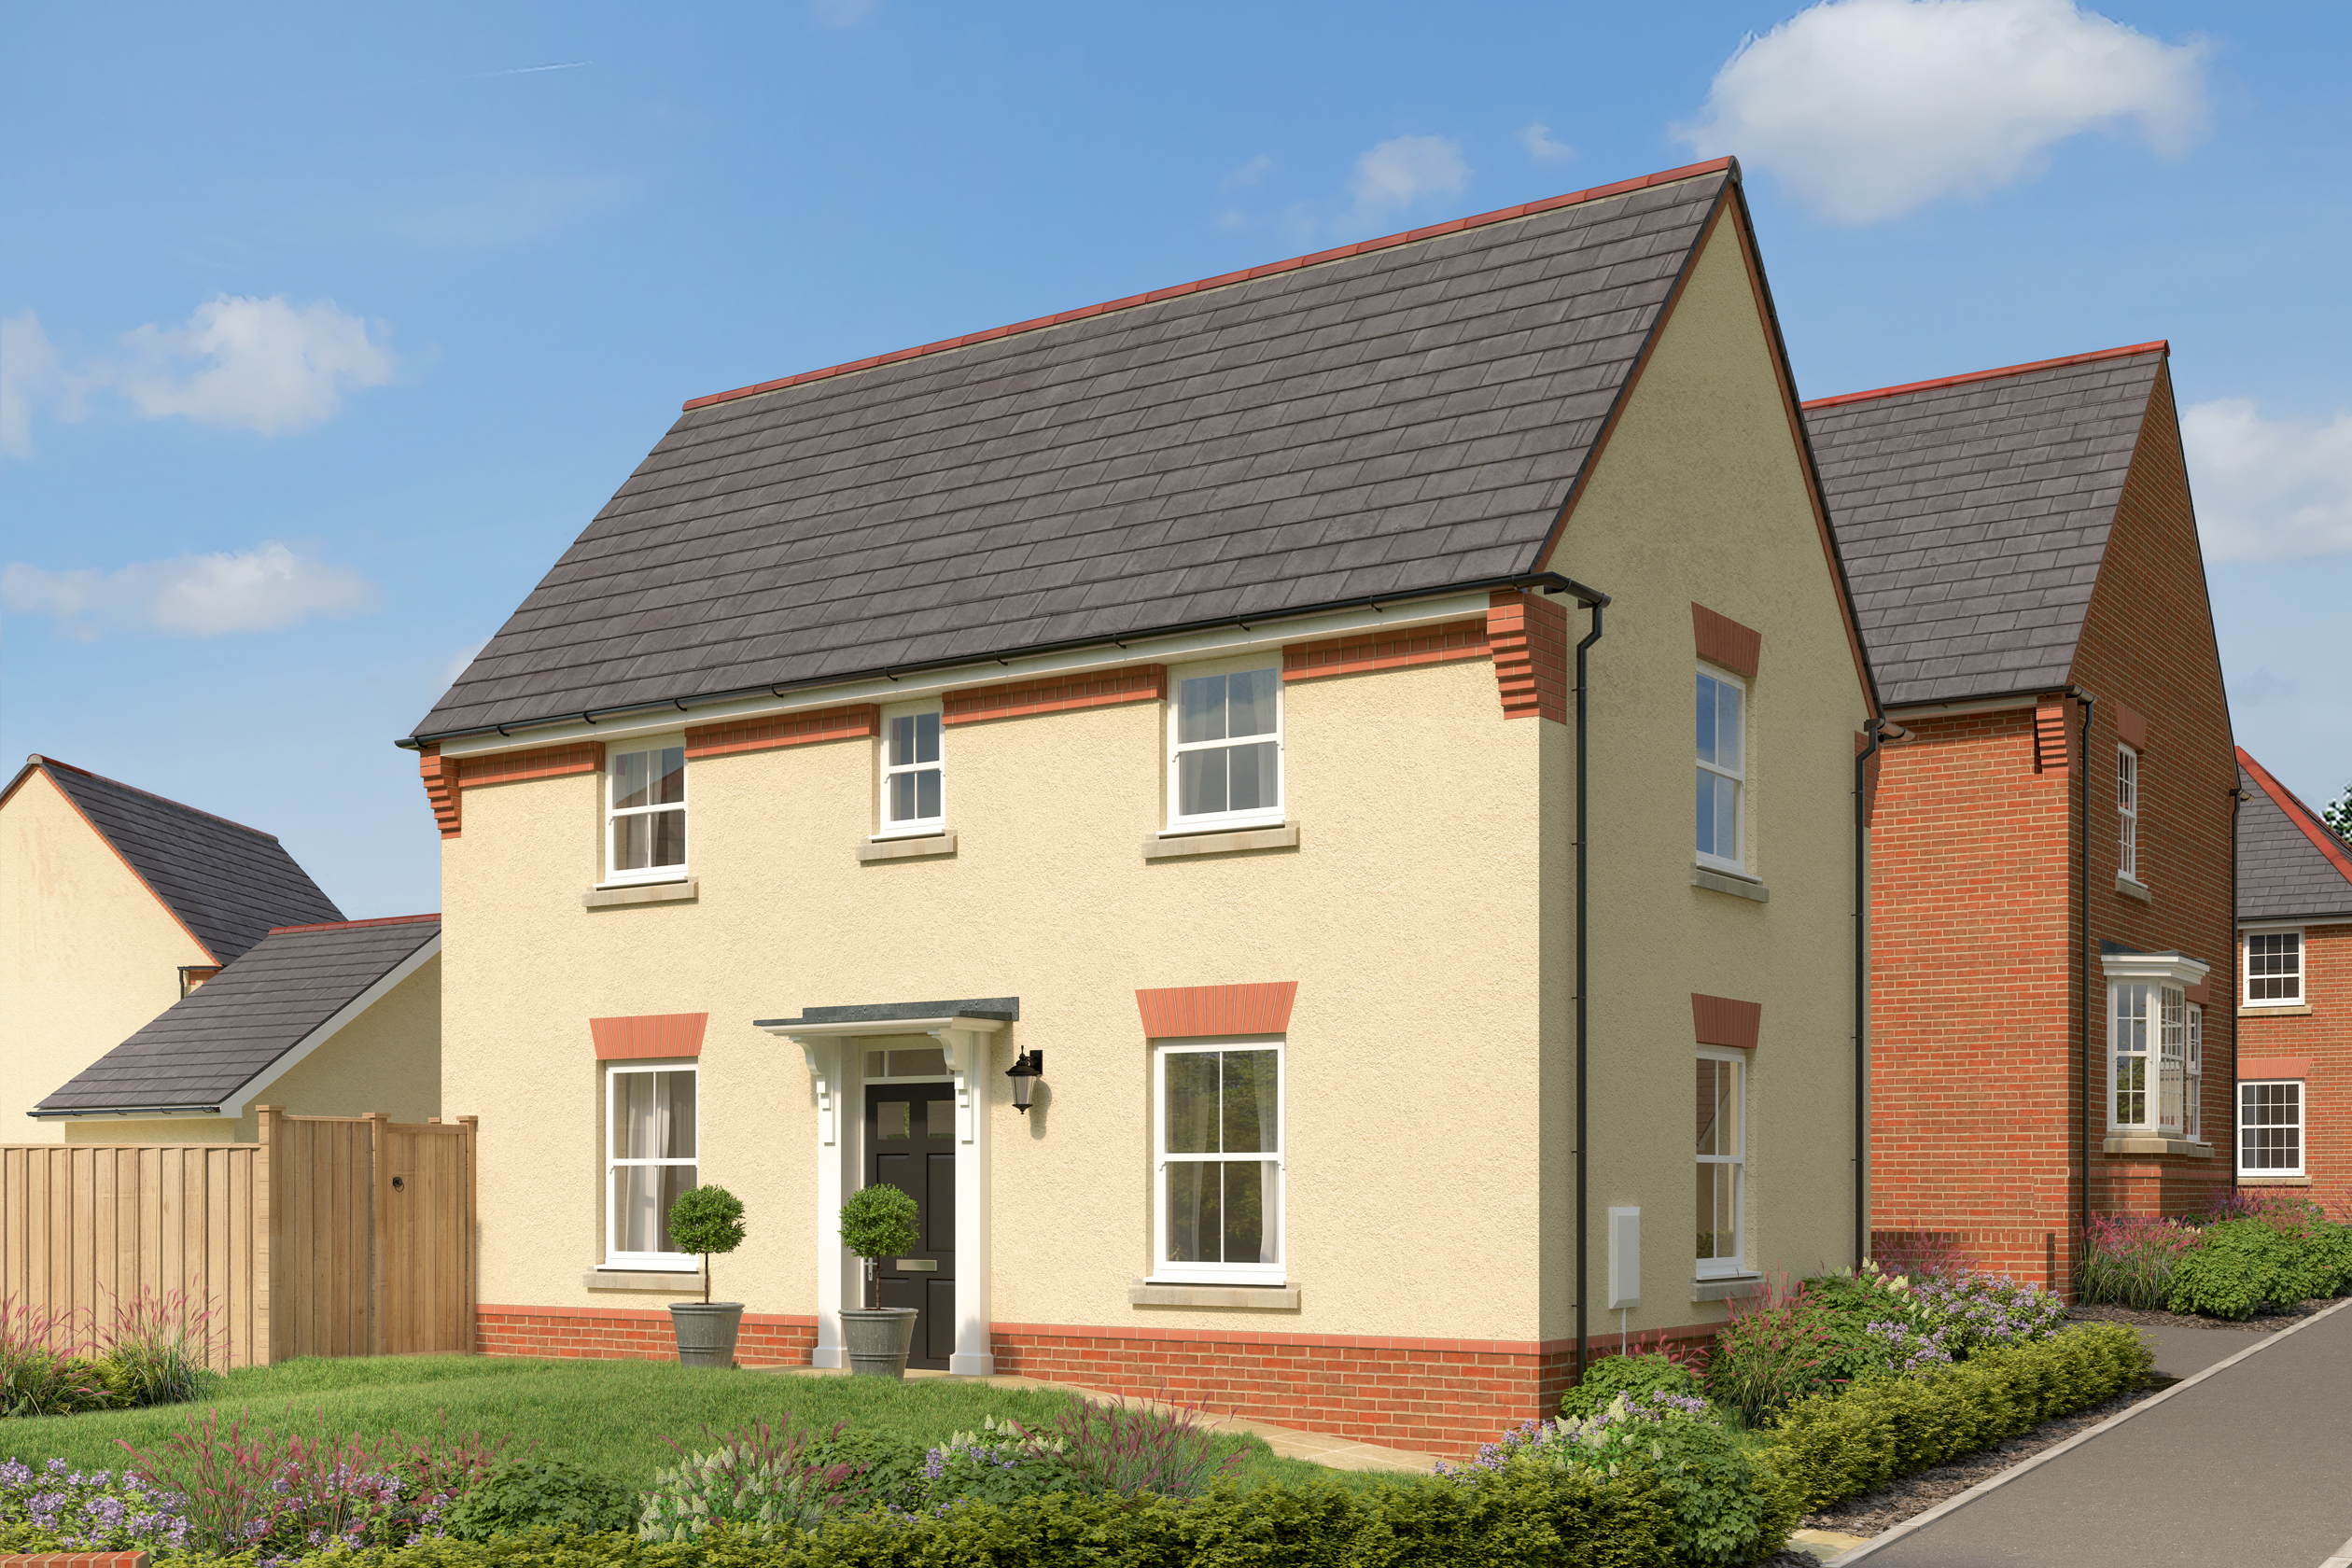 Illustrative image of the front of a Hatton 3 bedroom home